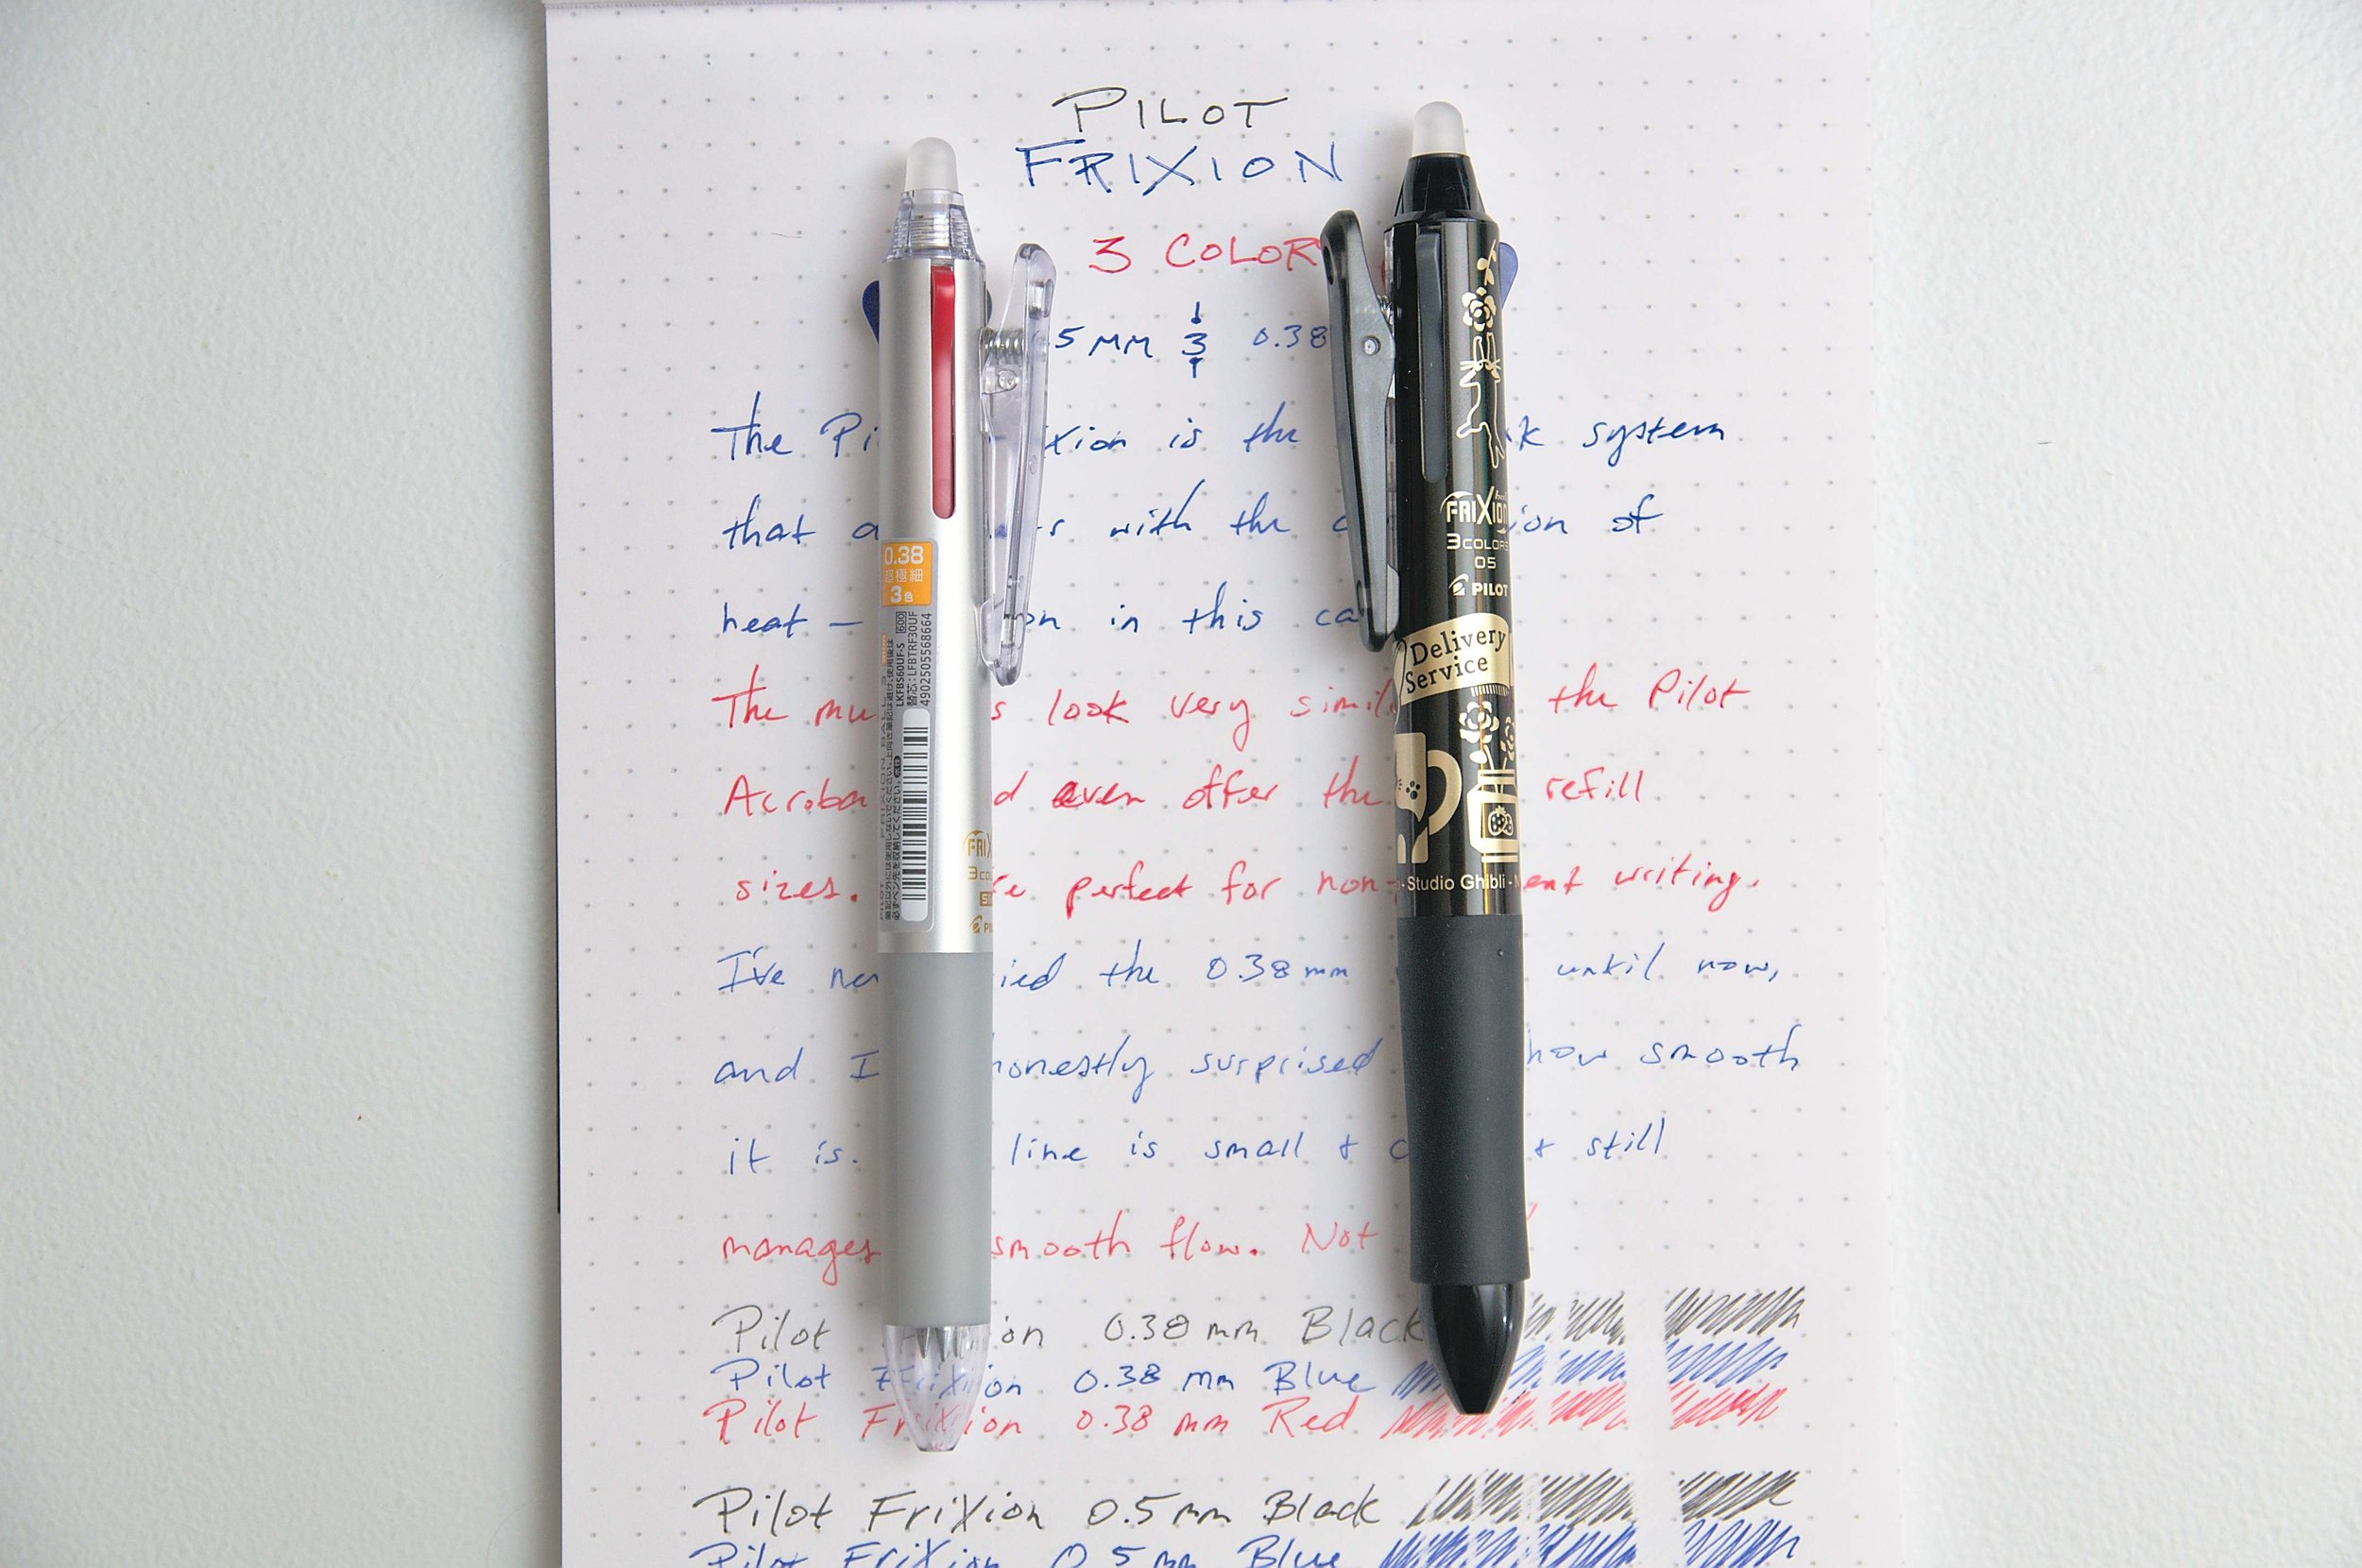 Pilot Frixion Ball 3 Multi-Pen Studio Ghibli Review